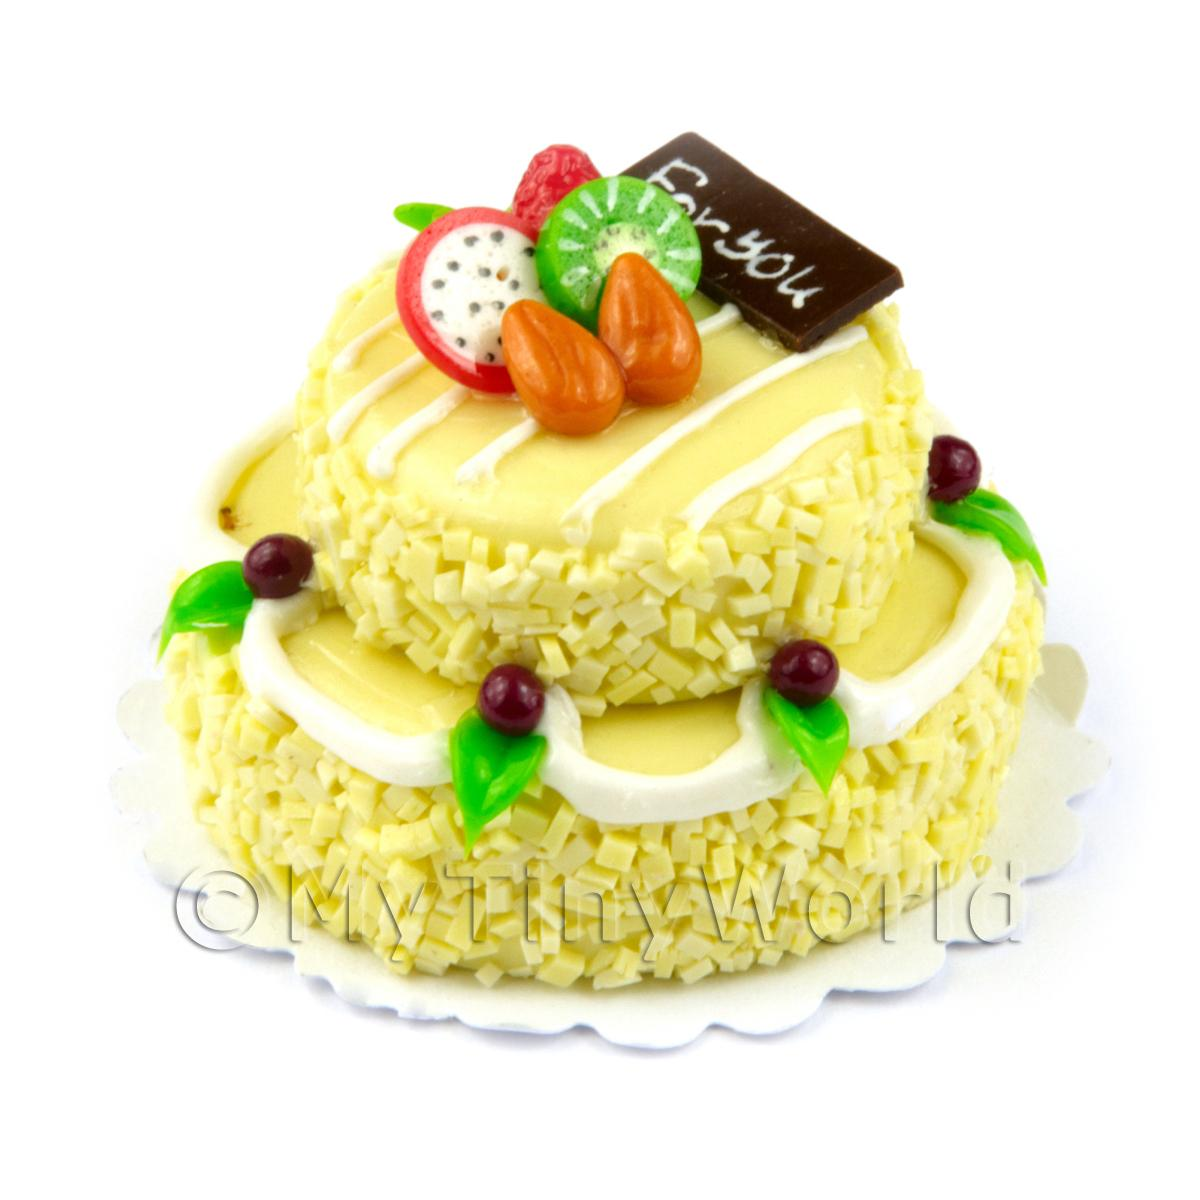 Dolls House Miniature Large Handmade Two Tier Yellow Iced Round Cake